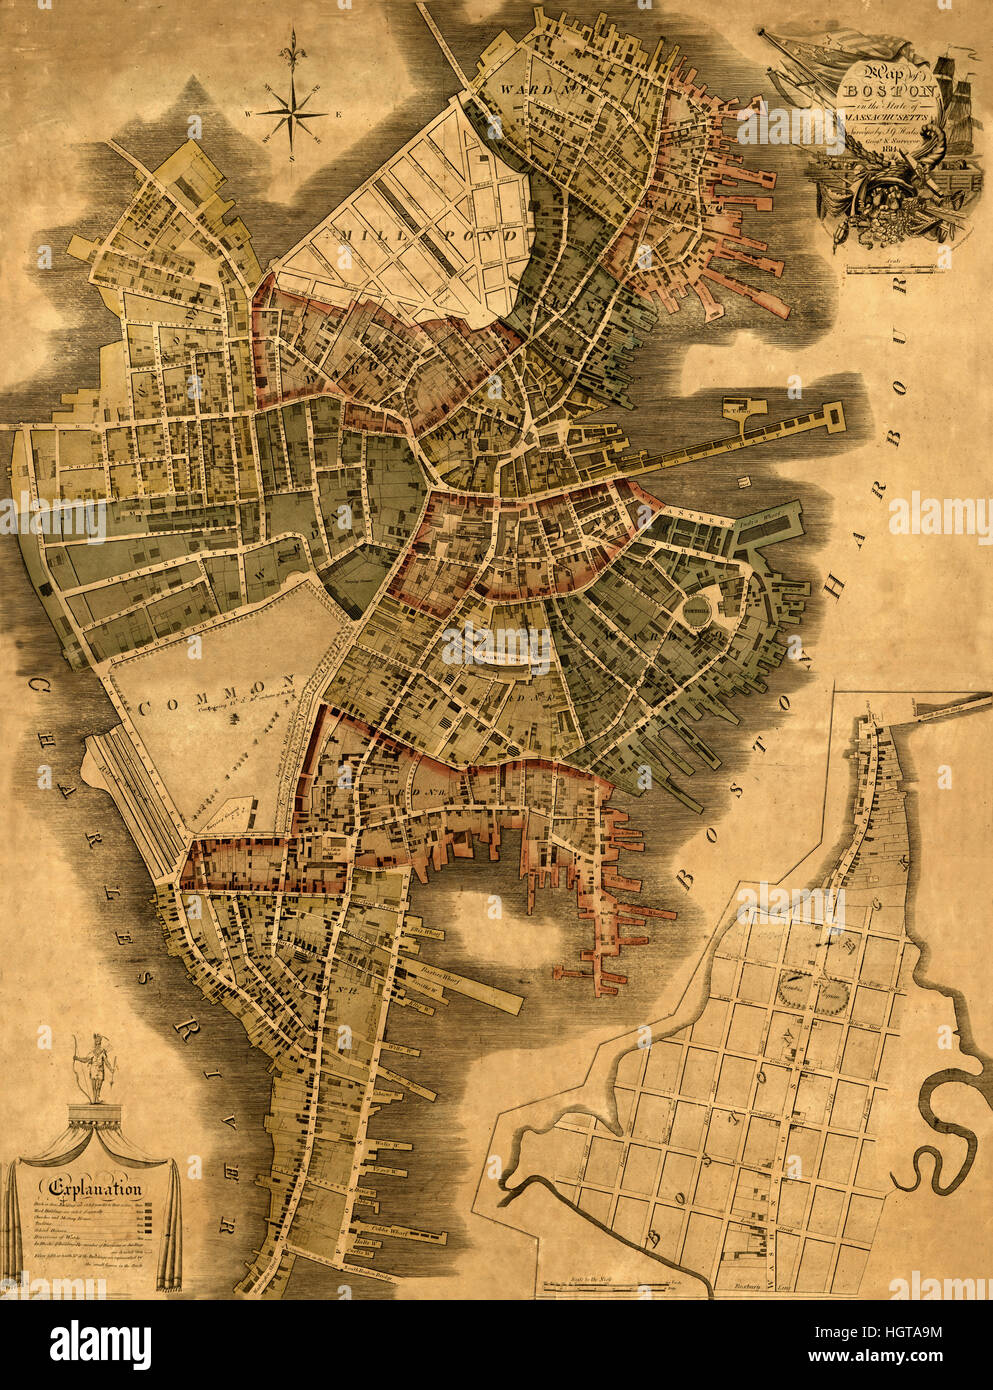 Old Map Of Boston Stock Photos  Old Map Of Boston Stock Images - Map of boston vicinity